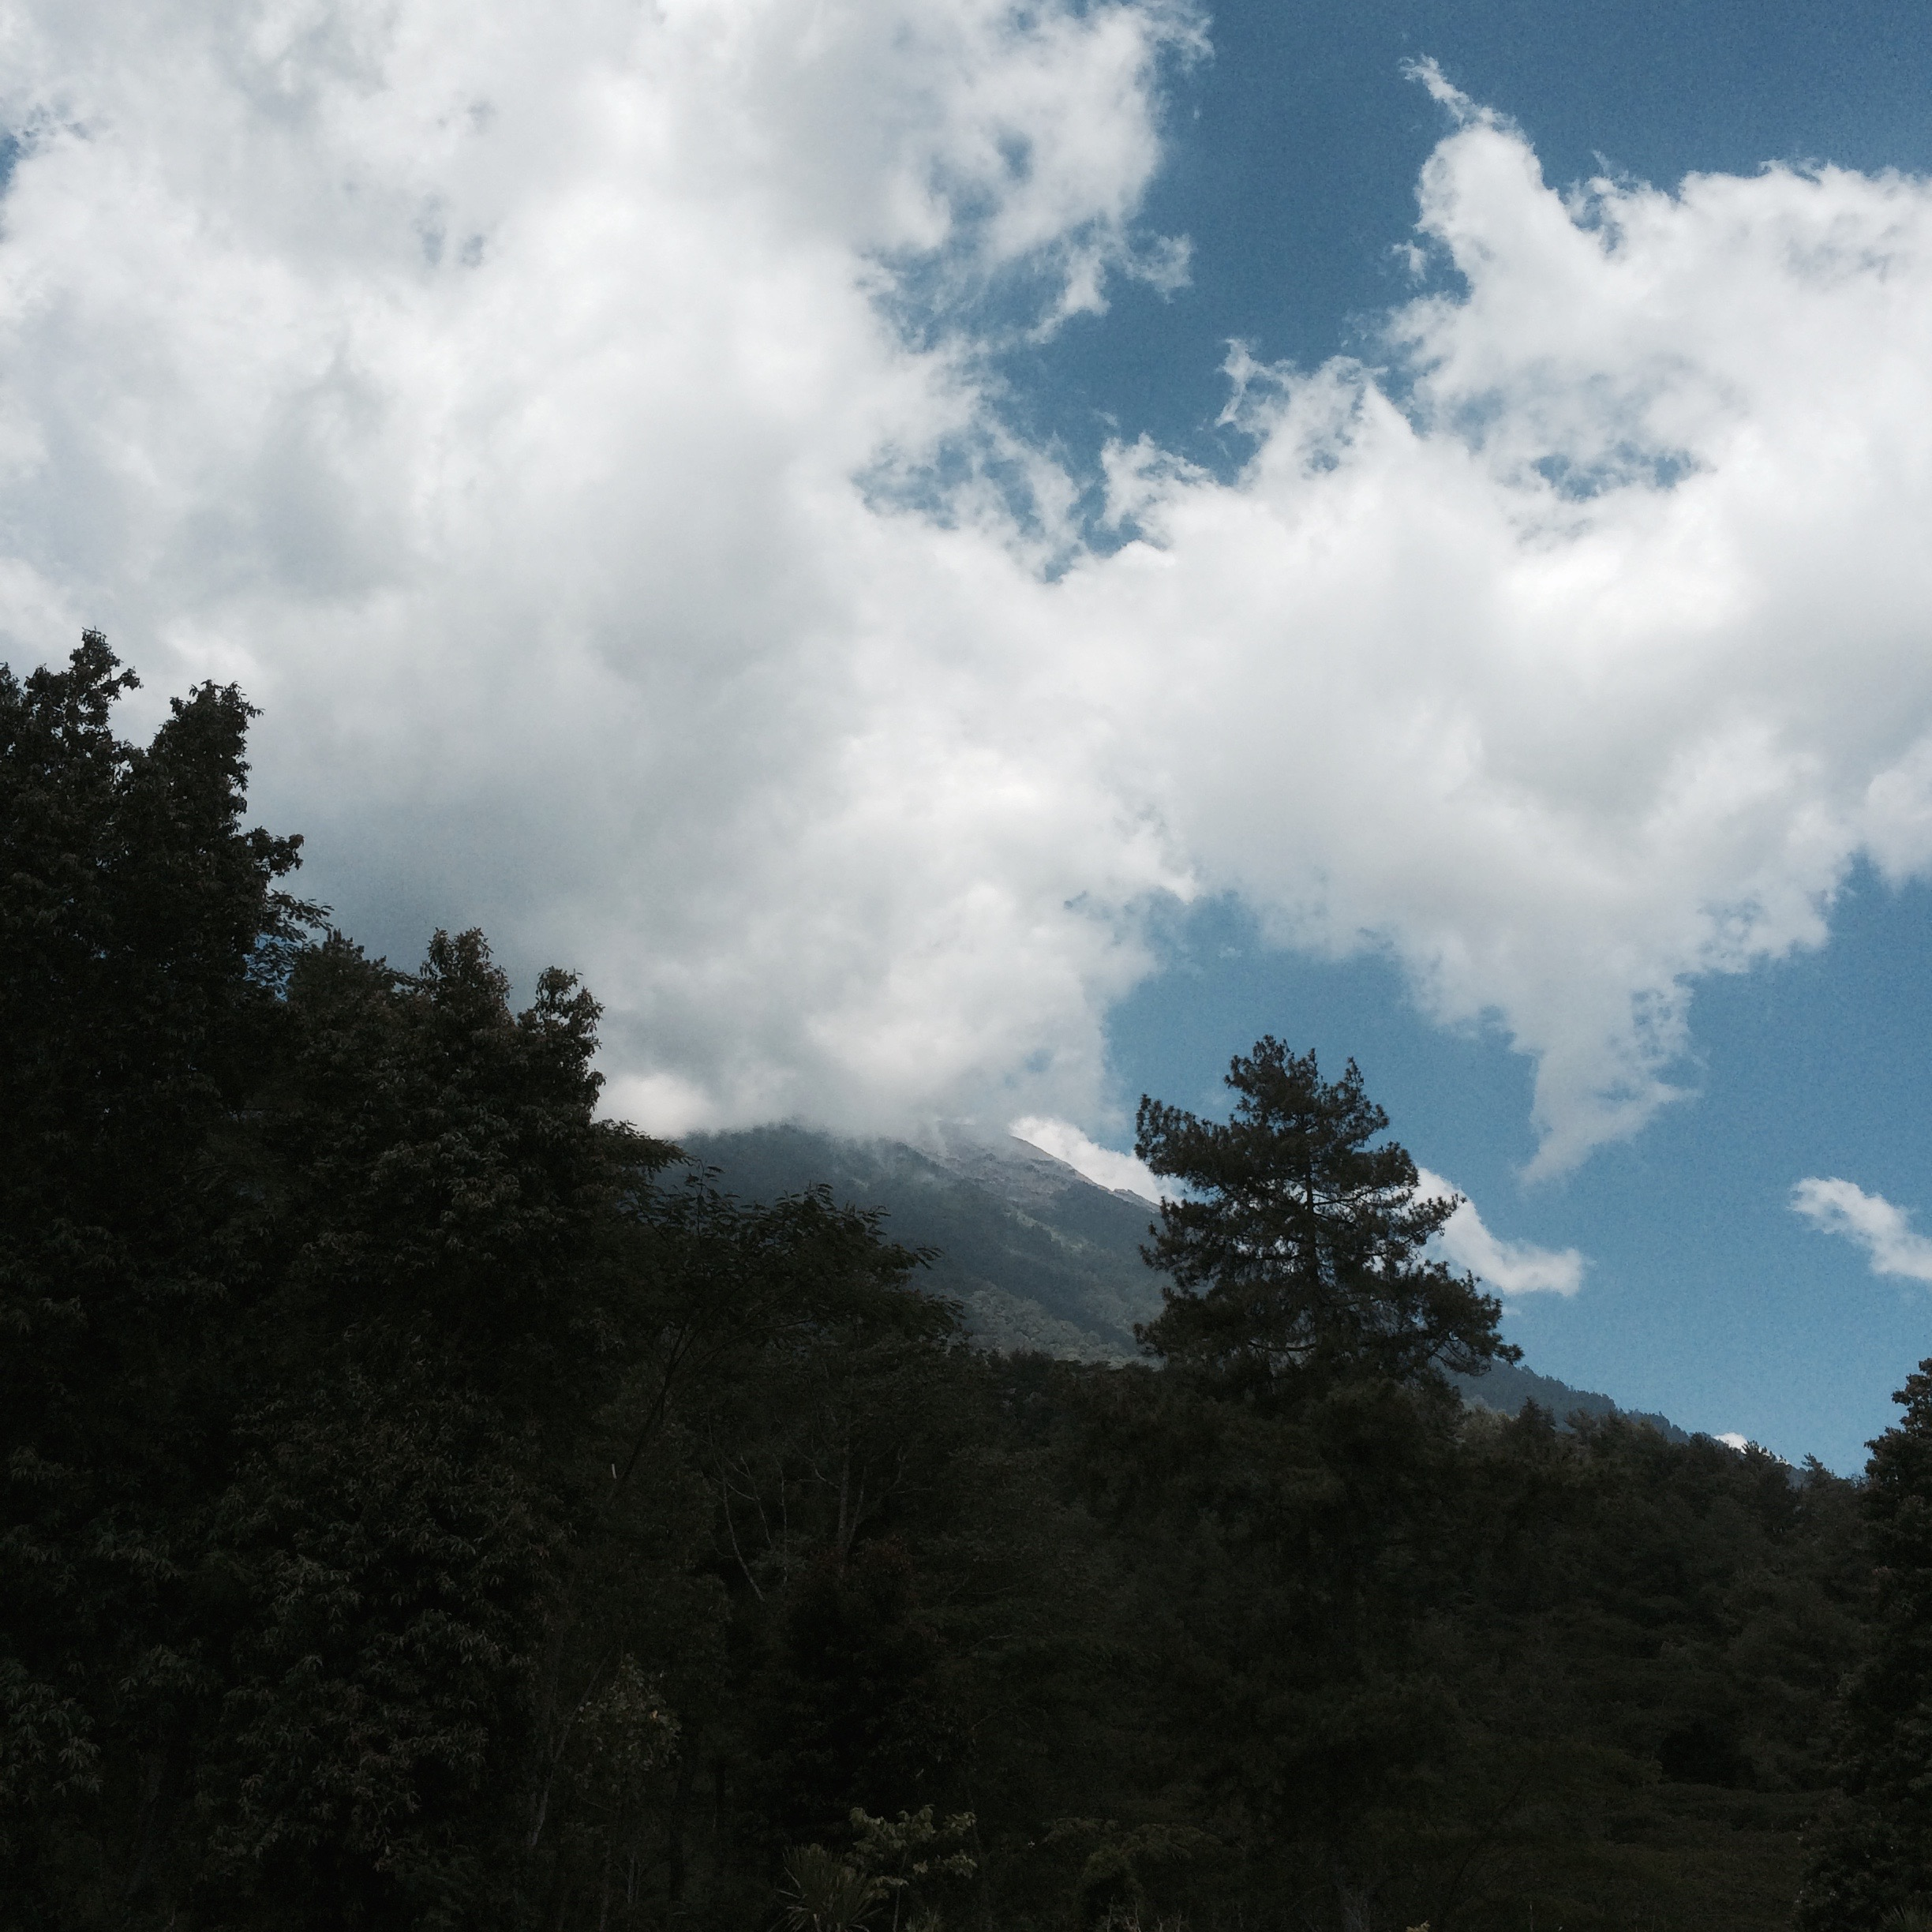 The view of Mt Agung from the Besakih Temple